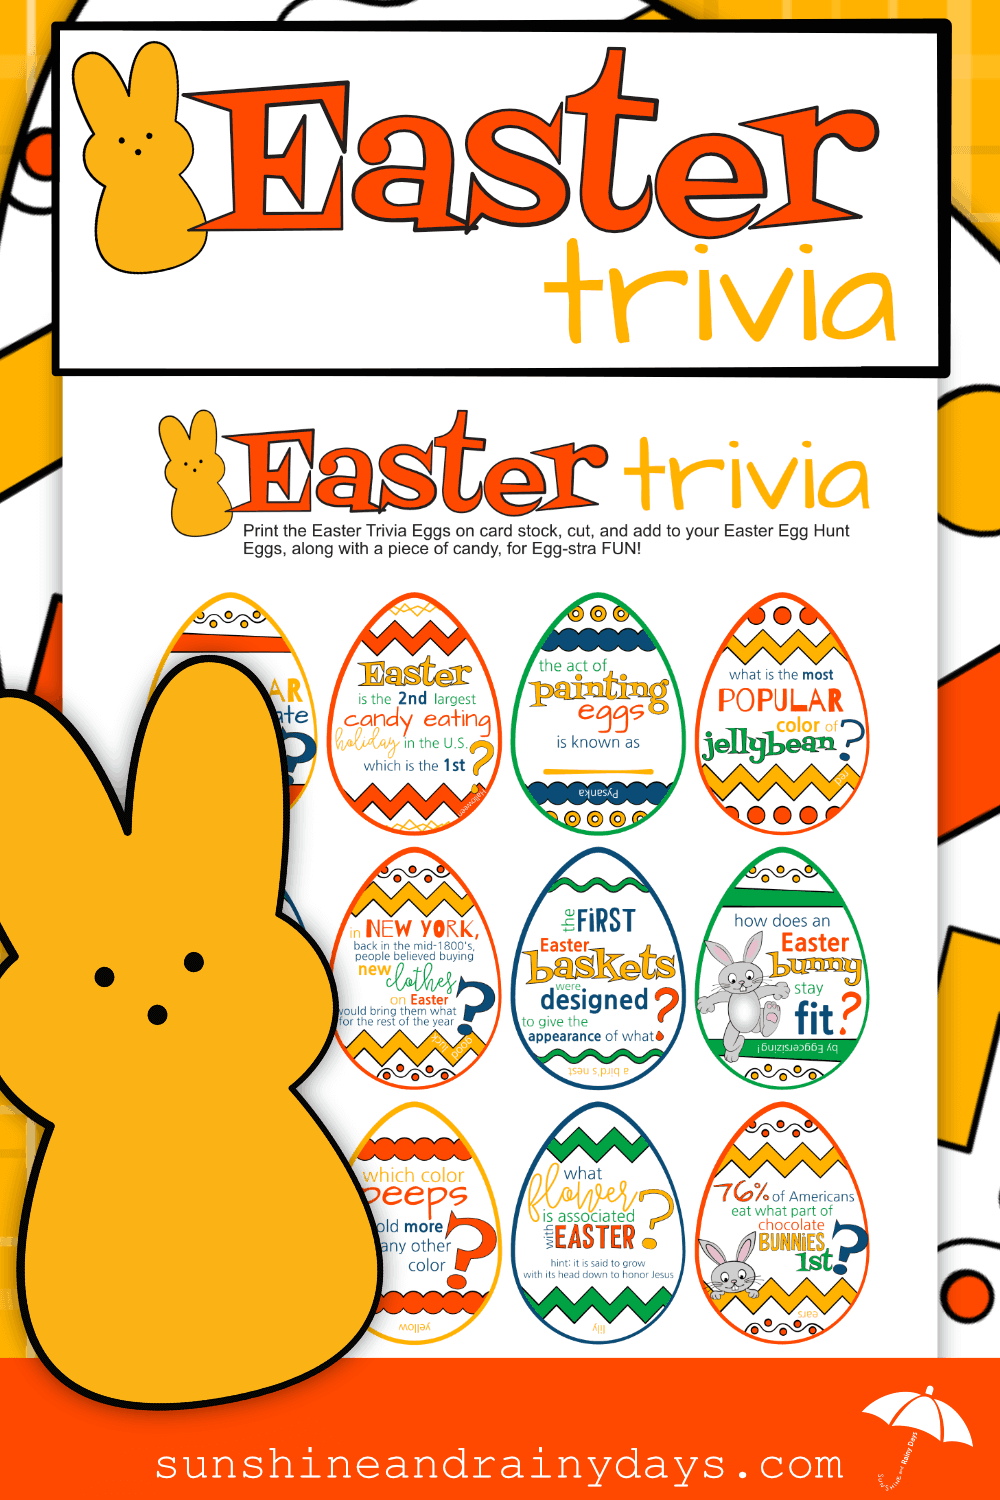 graphic about Easter Trivia Printable referred to as Easter Trivia In direction of Spot Inside Easter Eggs -